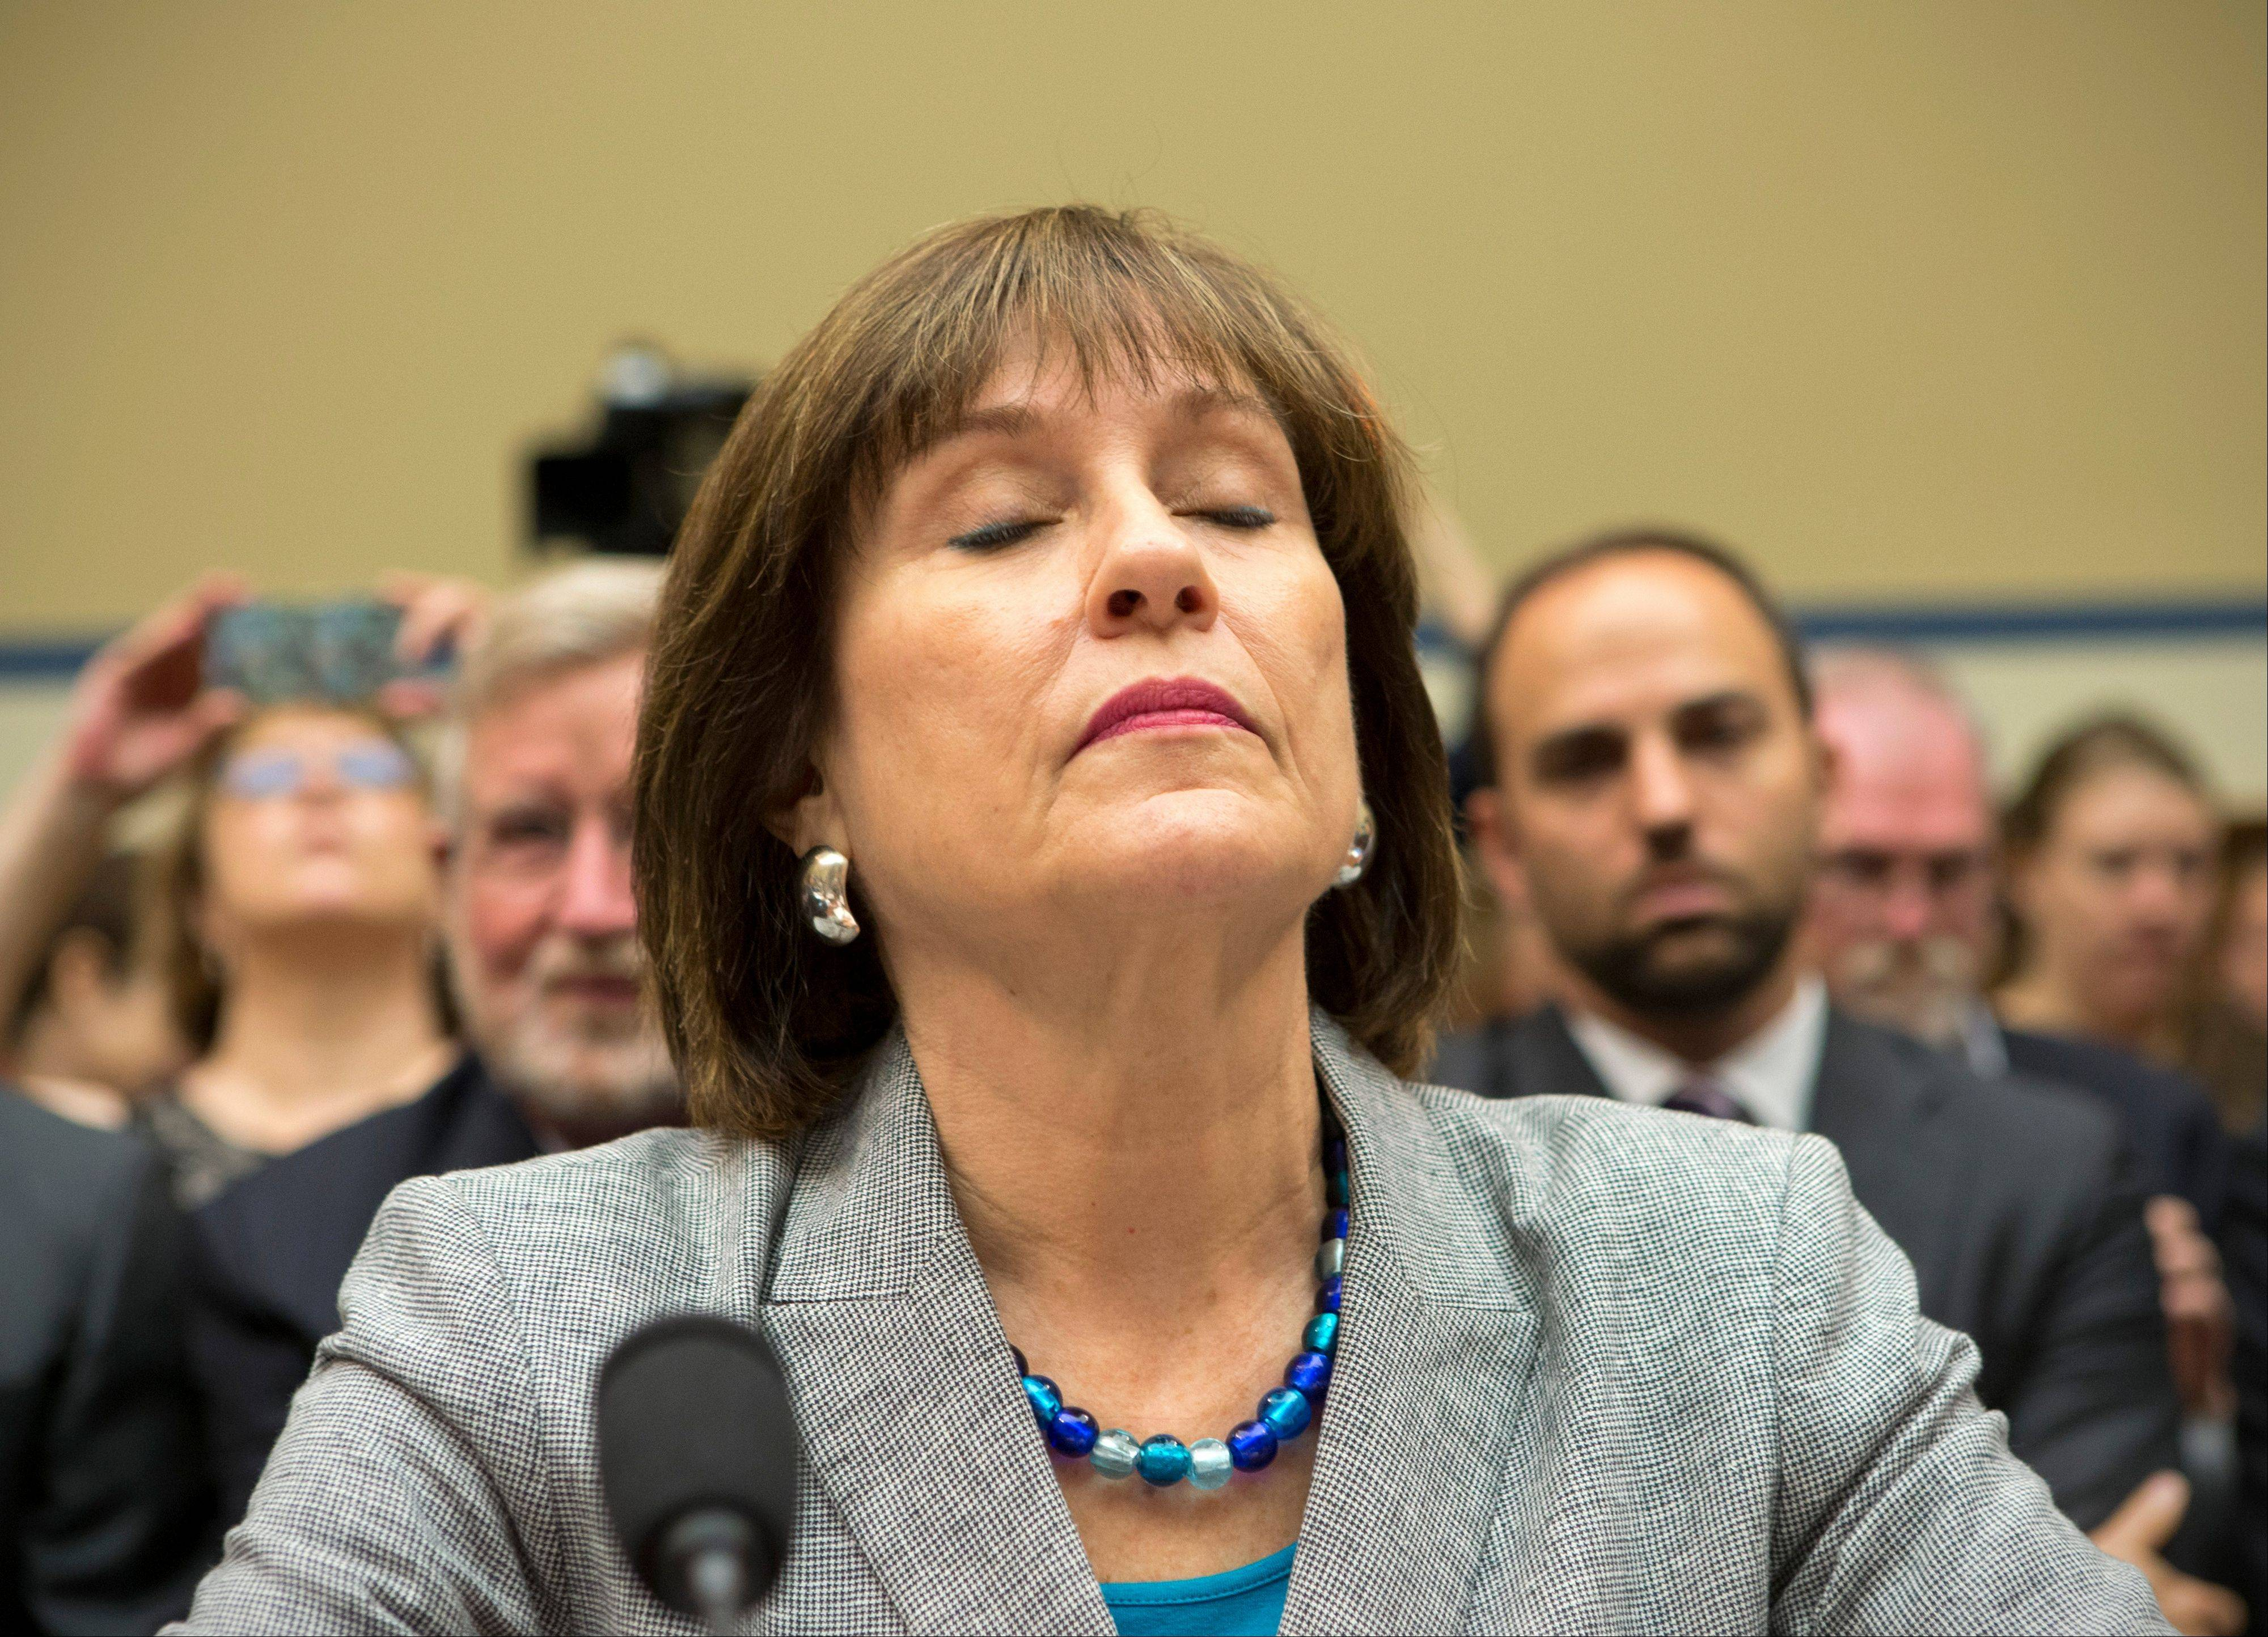 Lois Lerner, head of the IRS unit that decides whether to grant tax-exempt status to groups, listens on Capitol Hill in Washington, Wednesday, May 22, 2013, during a House Oversight and Government Reform Committee hearing to investigate the extra scrutiny the IRS gave to Tea Party and other conservative groups that applied for tax-exempt status. Lerner later invoked her constitutional right to not answer questions and was dismissed by House Oversight Committee Chairman Darrell Issa, R-Calif. (AP Photo/J. Scott Applewhite)